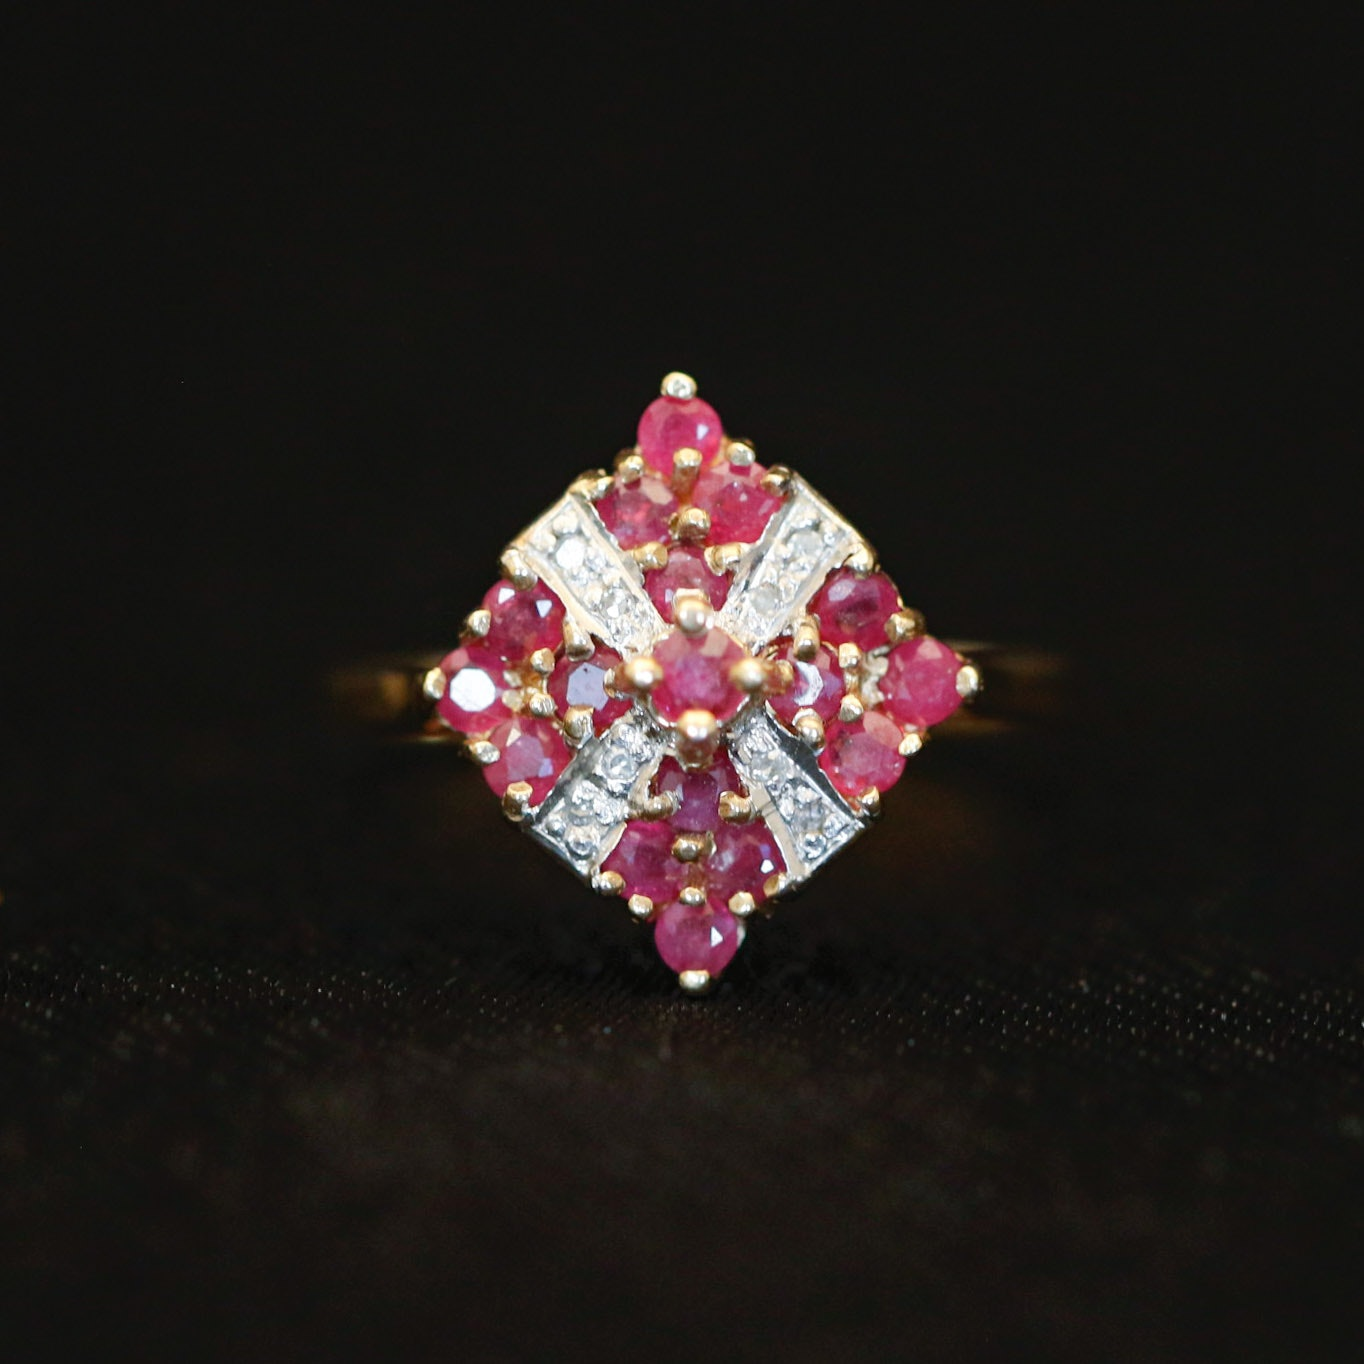 10K Yellow Gold Diamond and Ruby Art Deco Cocktail Ring